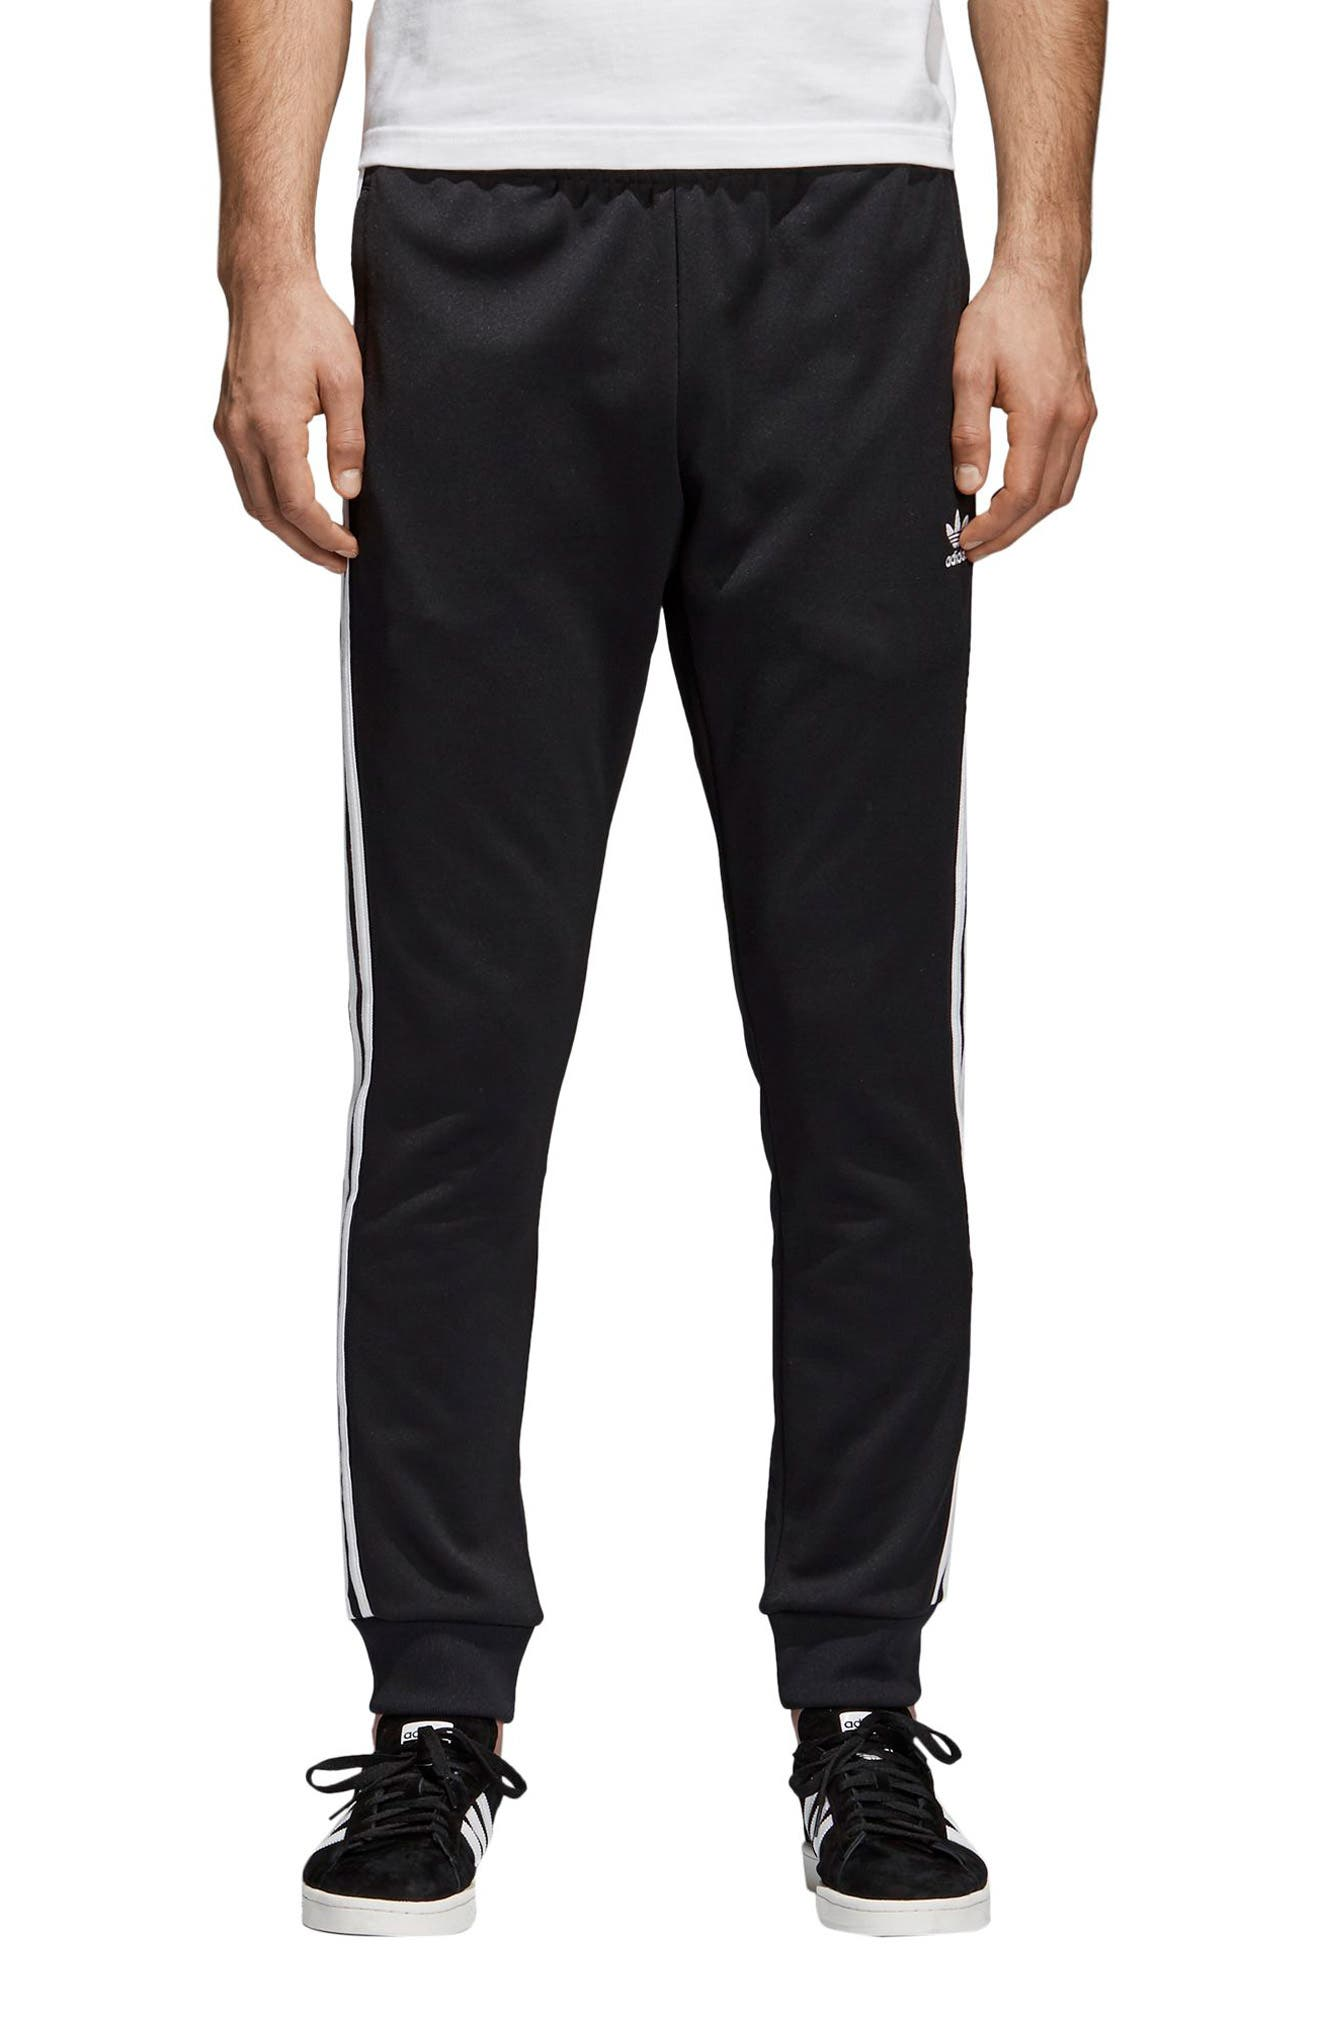 ADIDAS ORIGINALS Track Pants, Main, color, BLACK